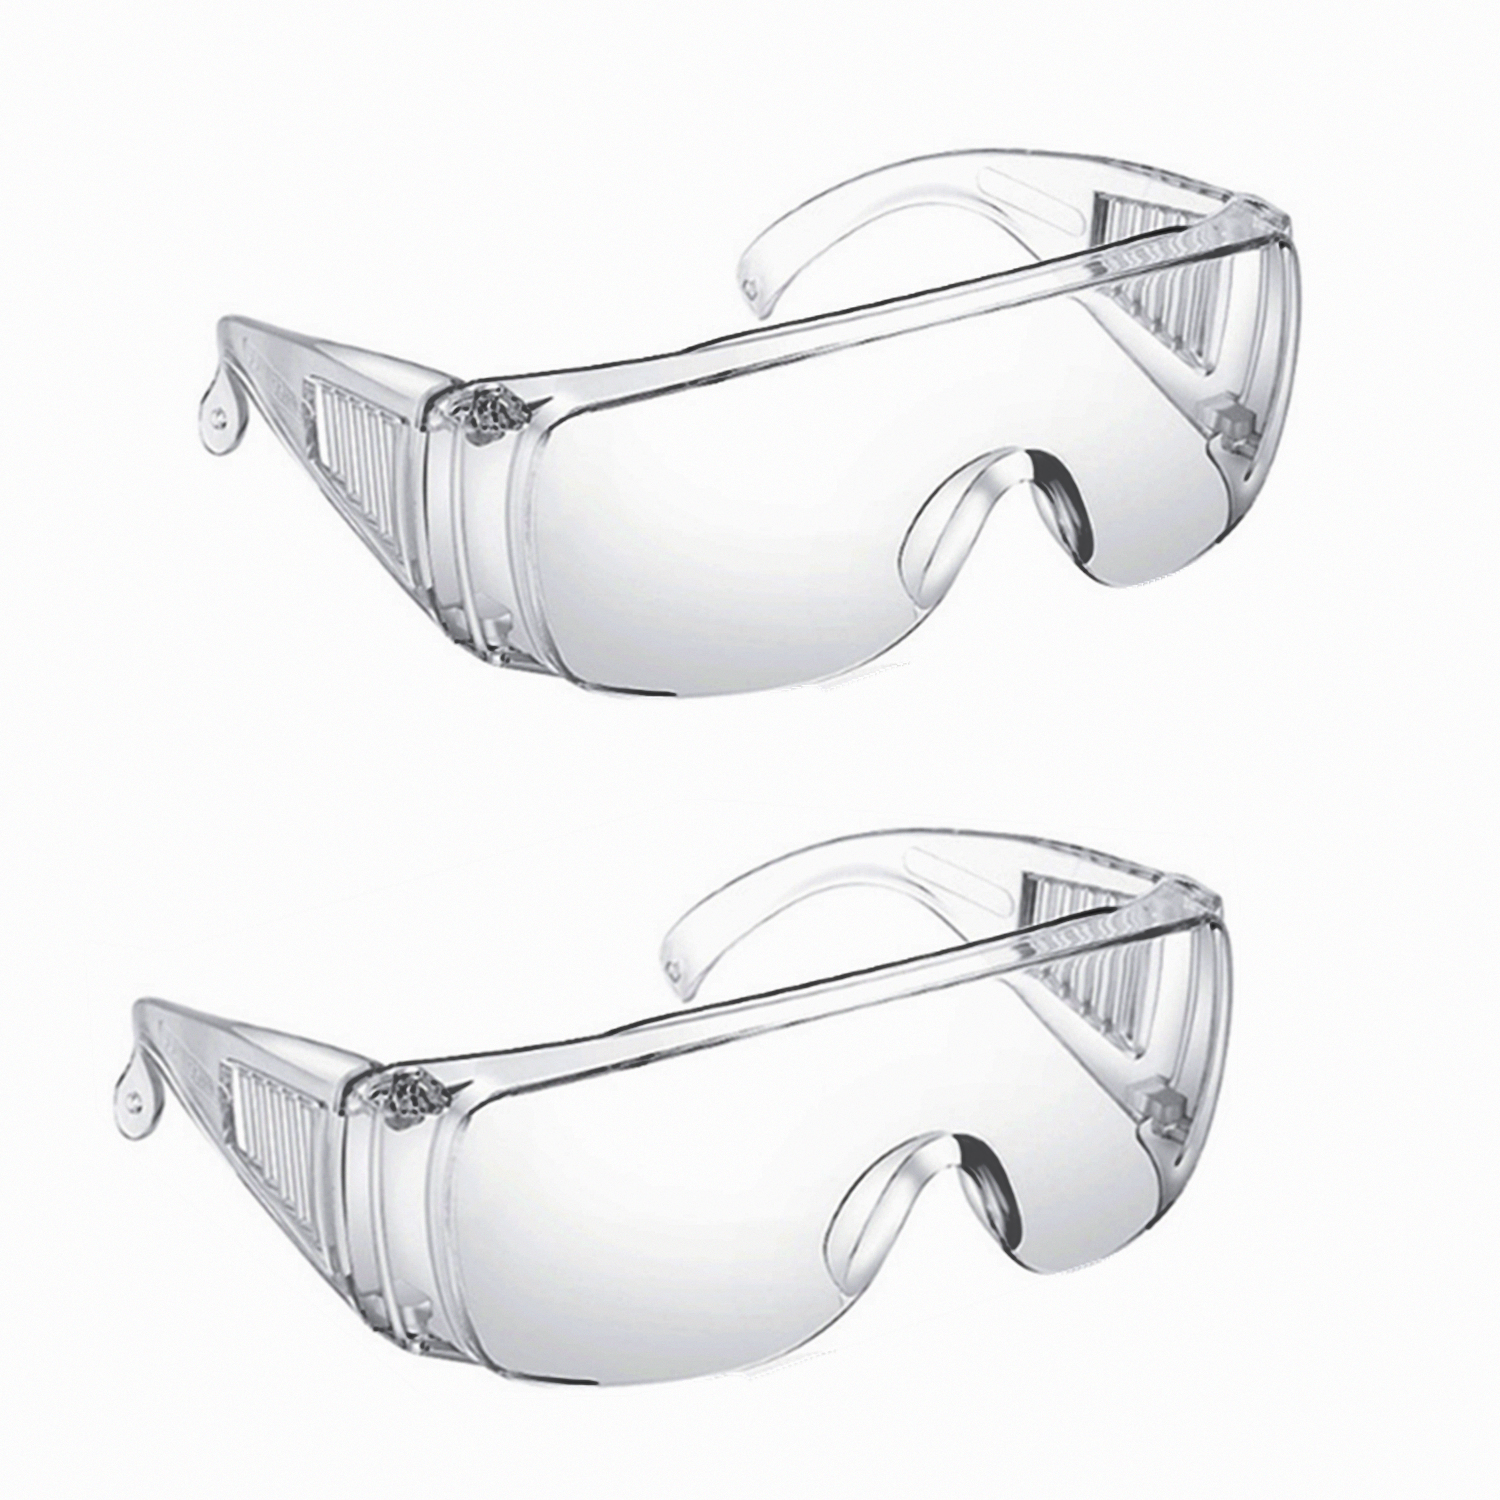 Safety Goggles Glasses Transparent Dust-Proof Glasses Workplace Lab Dental Eyewear Splash Eye Protection Anti-wind Glasses